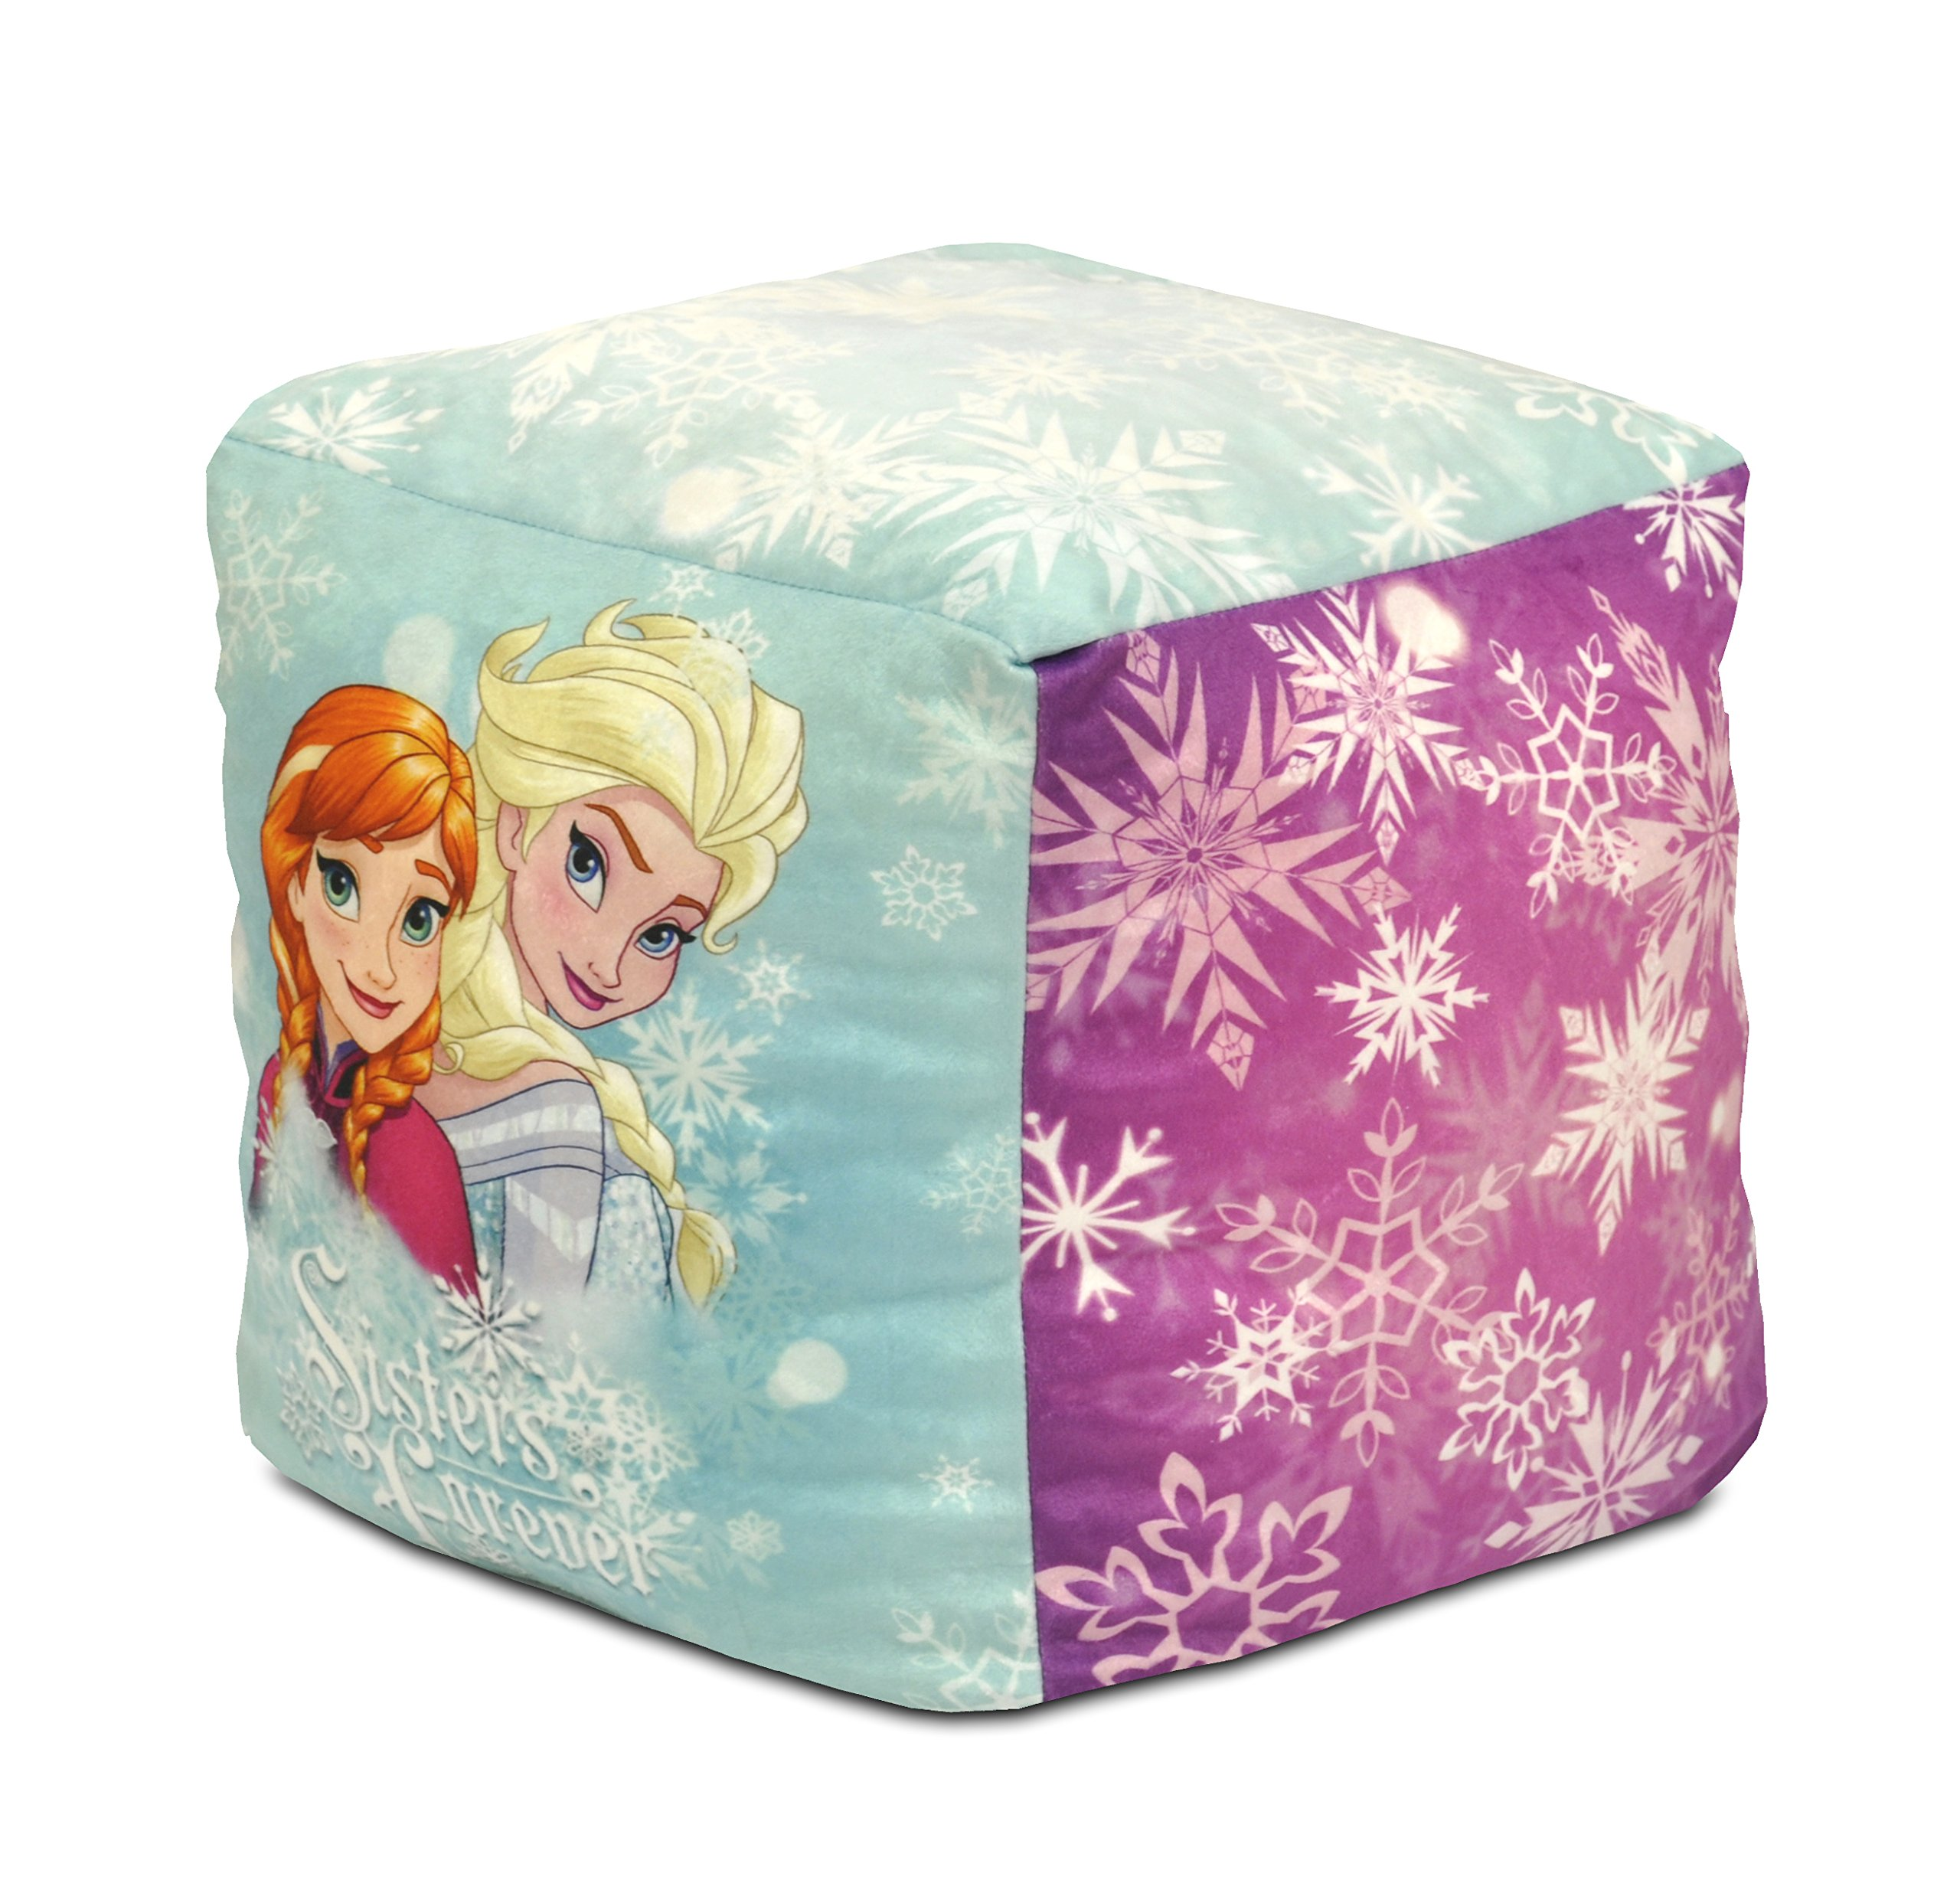 Disney Frozen Sisters Forever Square Pouf by Disney